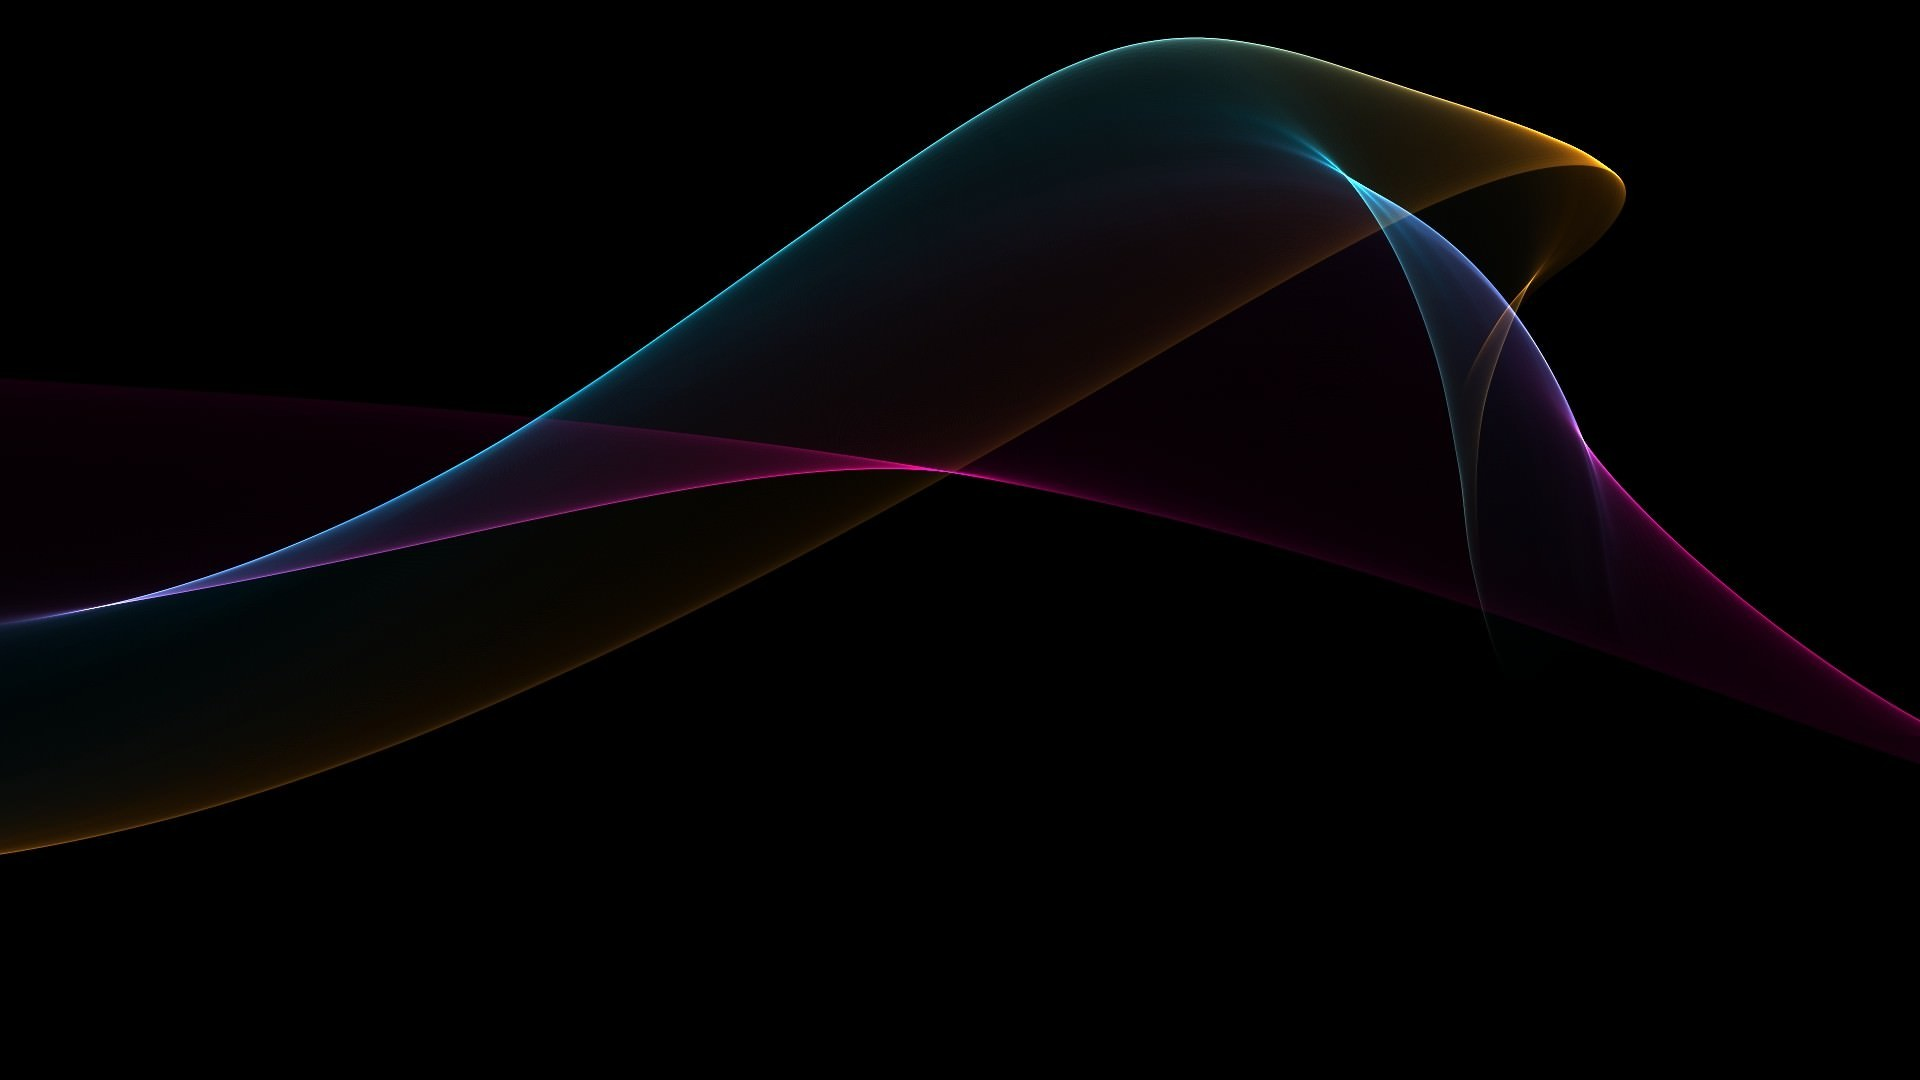 Black Abstract Wallpaper For You